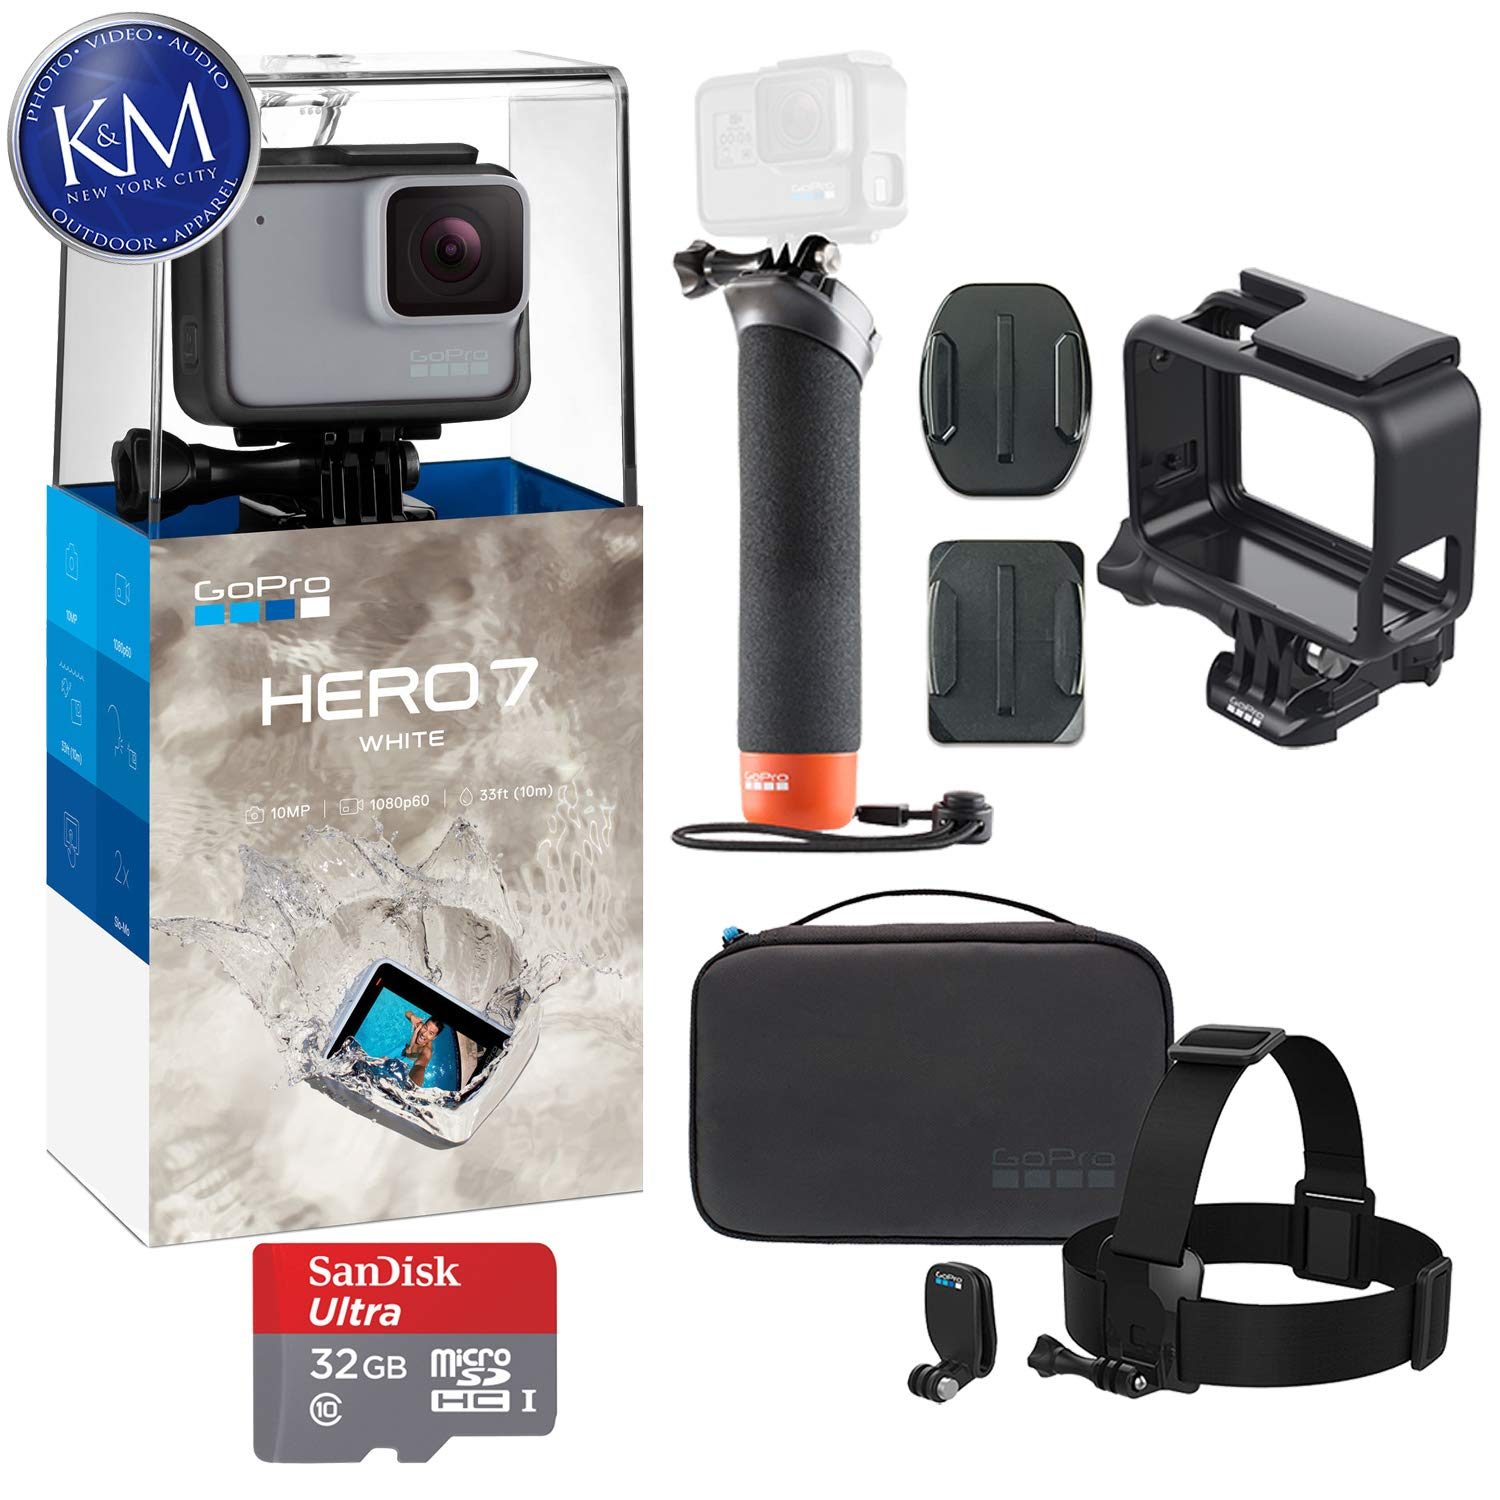 GoPro Hero 7 (White) Action Camera with GoPro Adventure Kit Essential Bundle by K&M